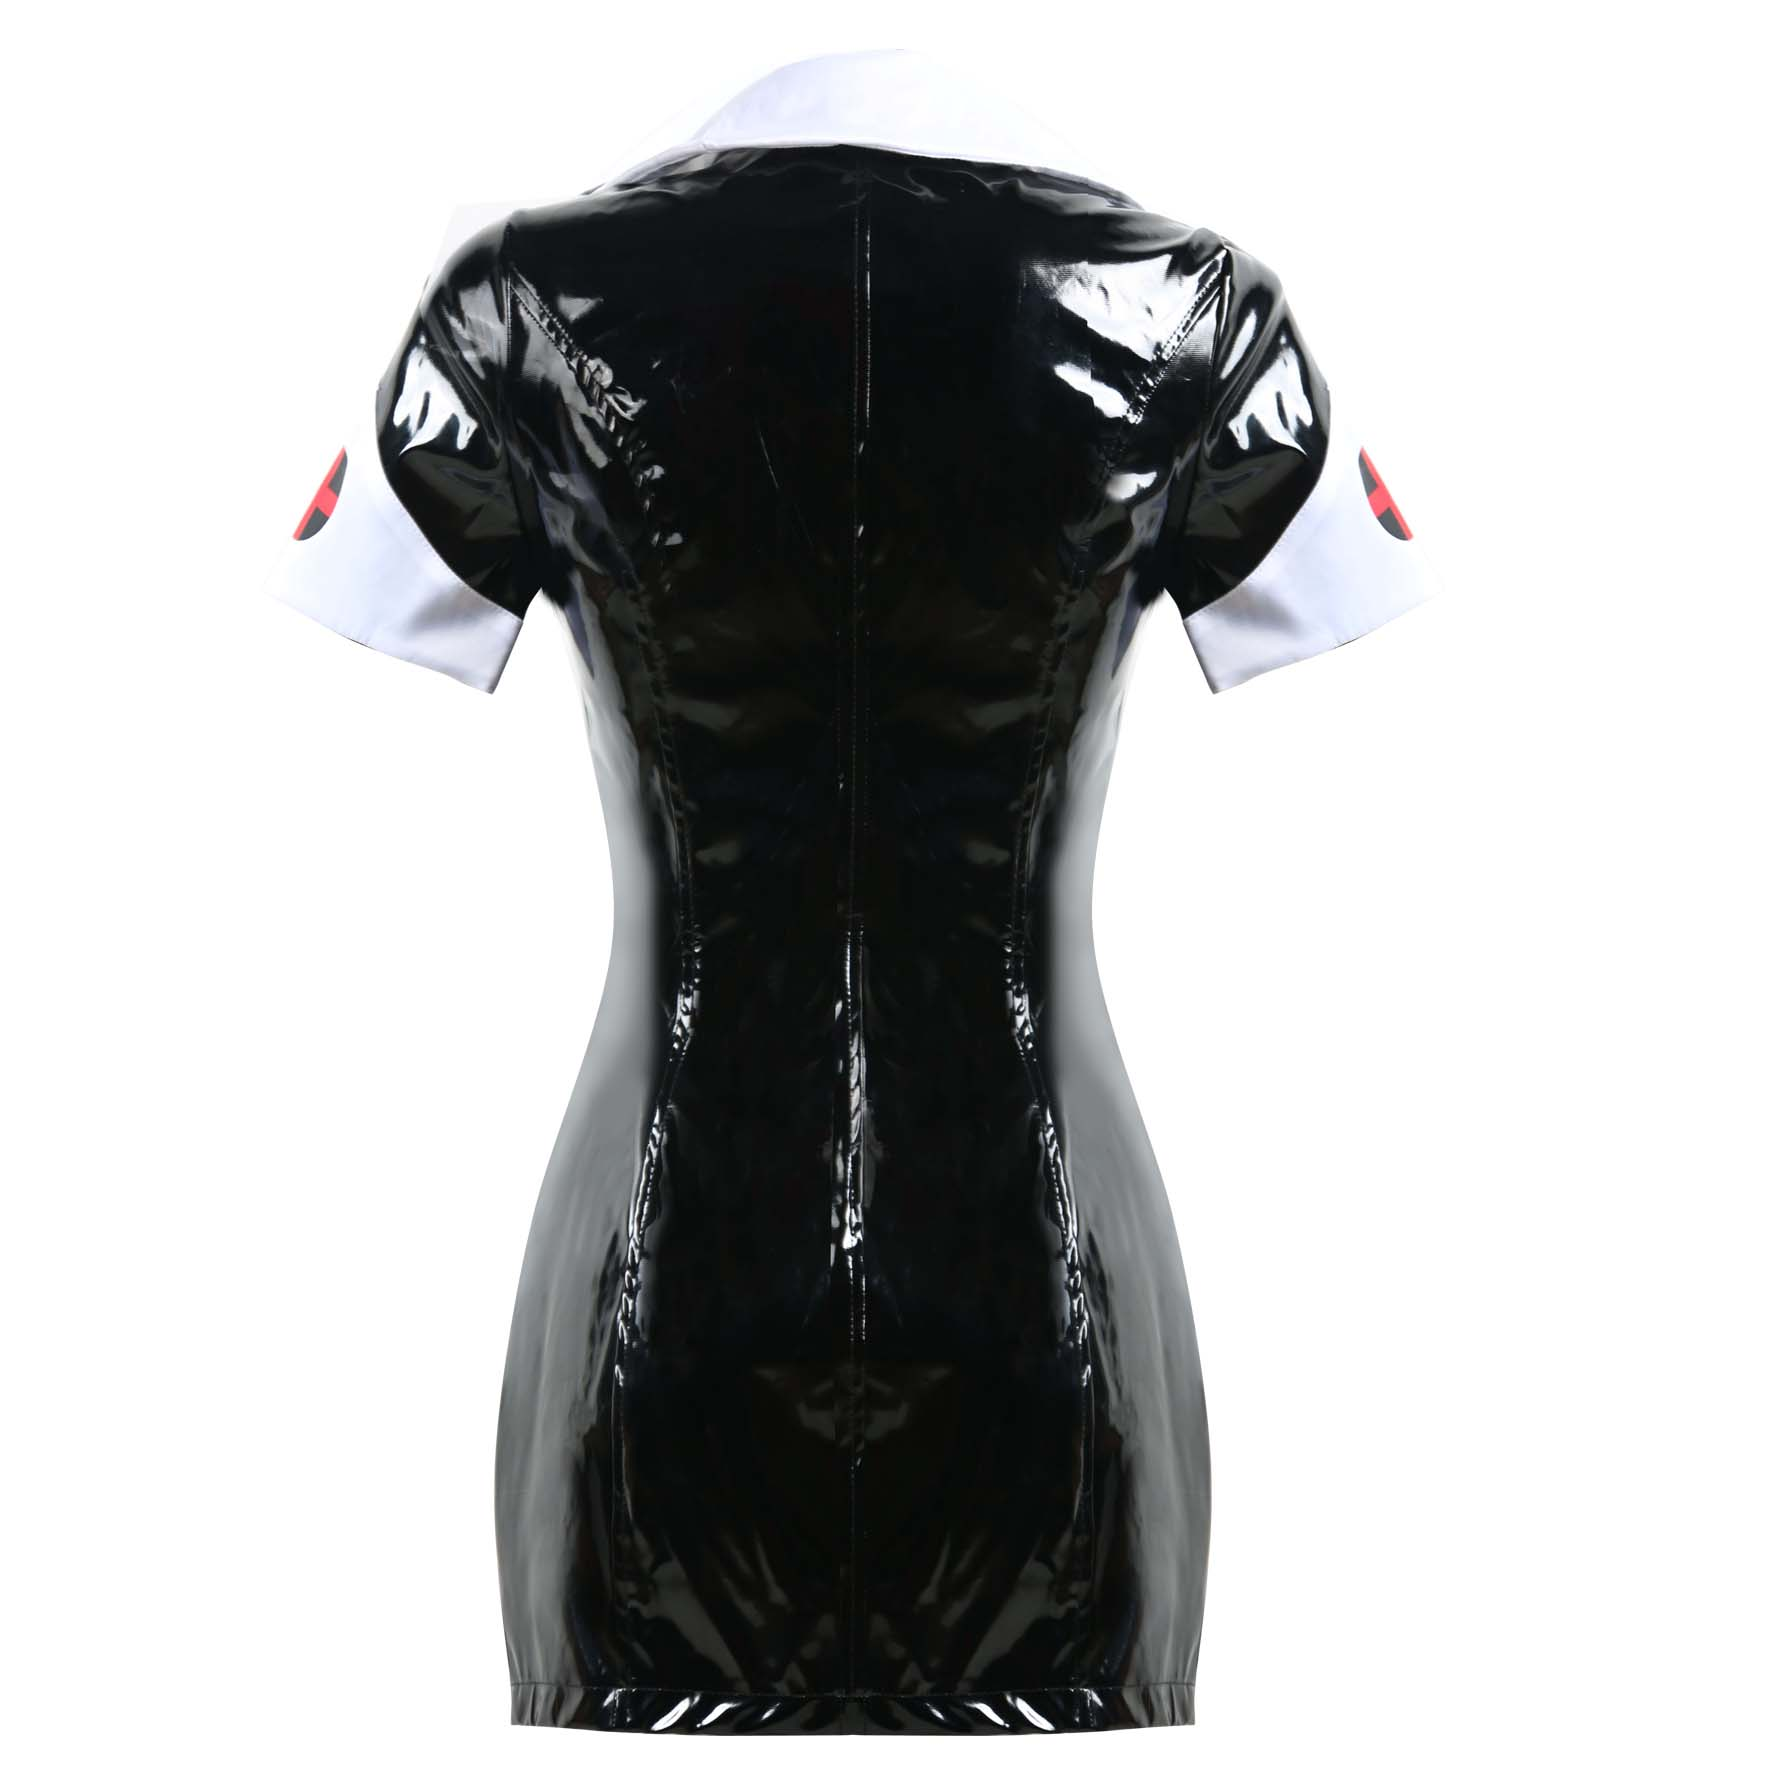 2019 new arrivals mature women sexy leather lingerie nurse pvc costume dress